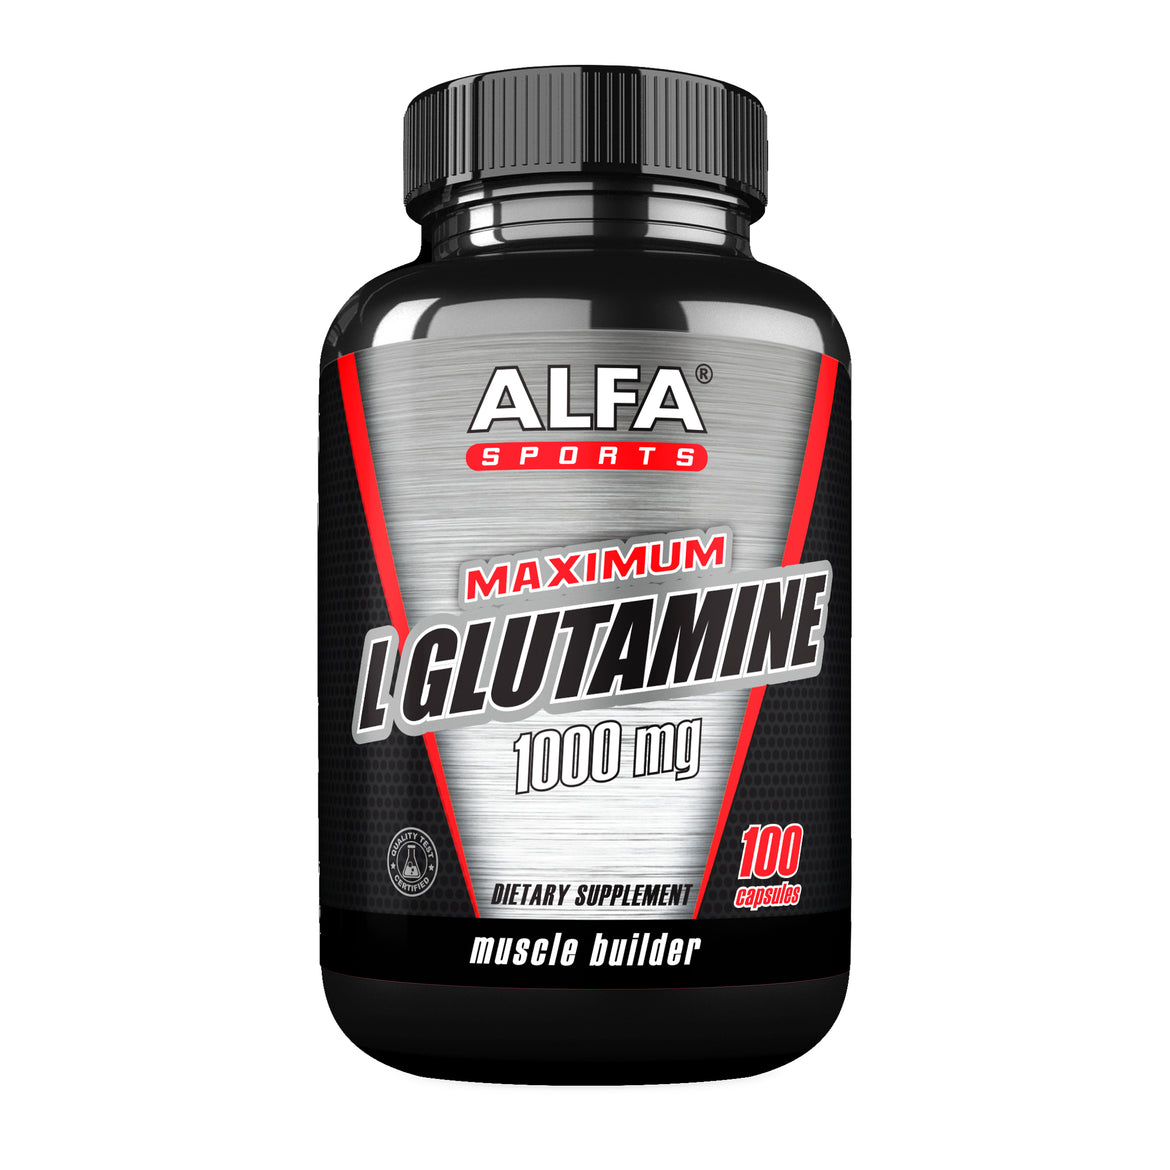 Maximum L-Glutamine 1000 mg - 100 capsules